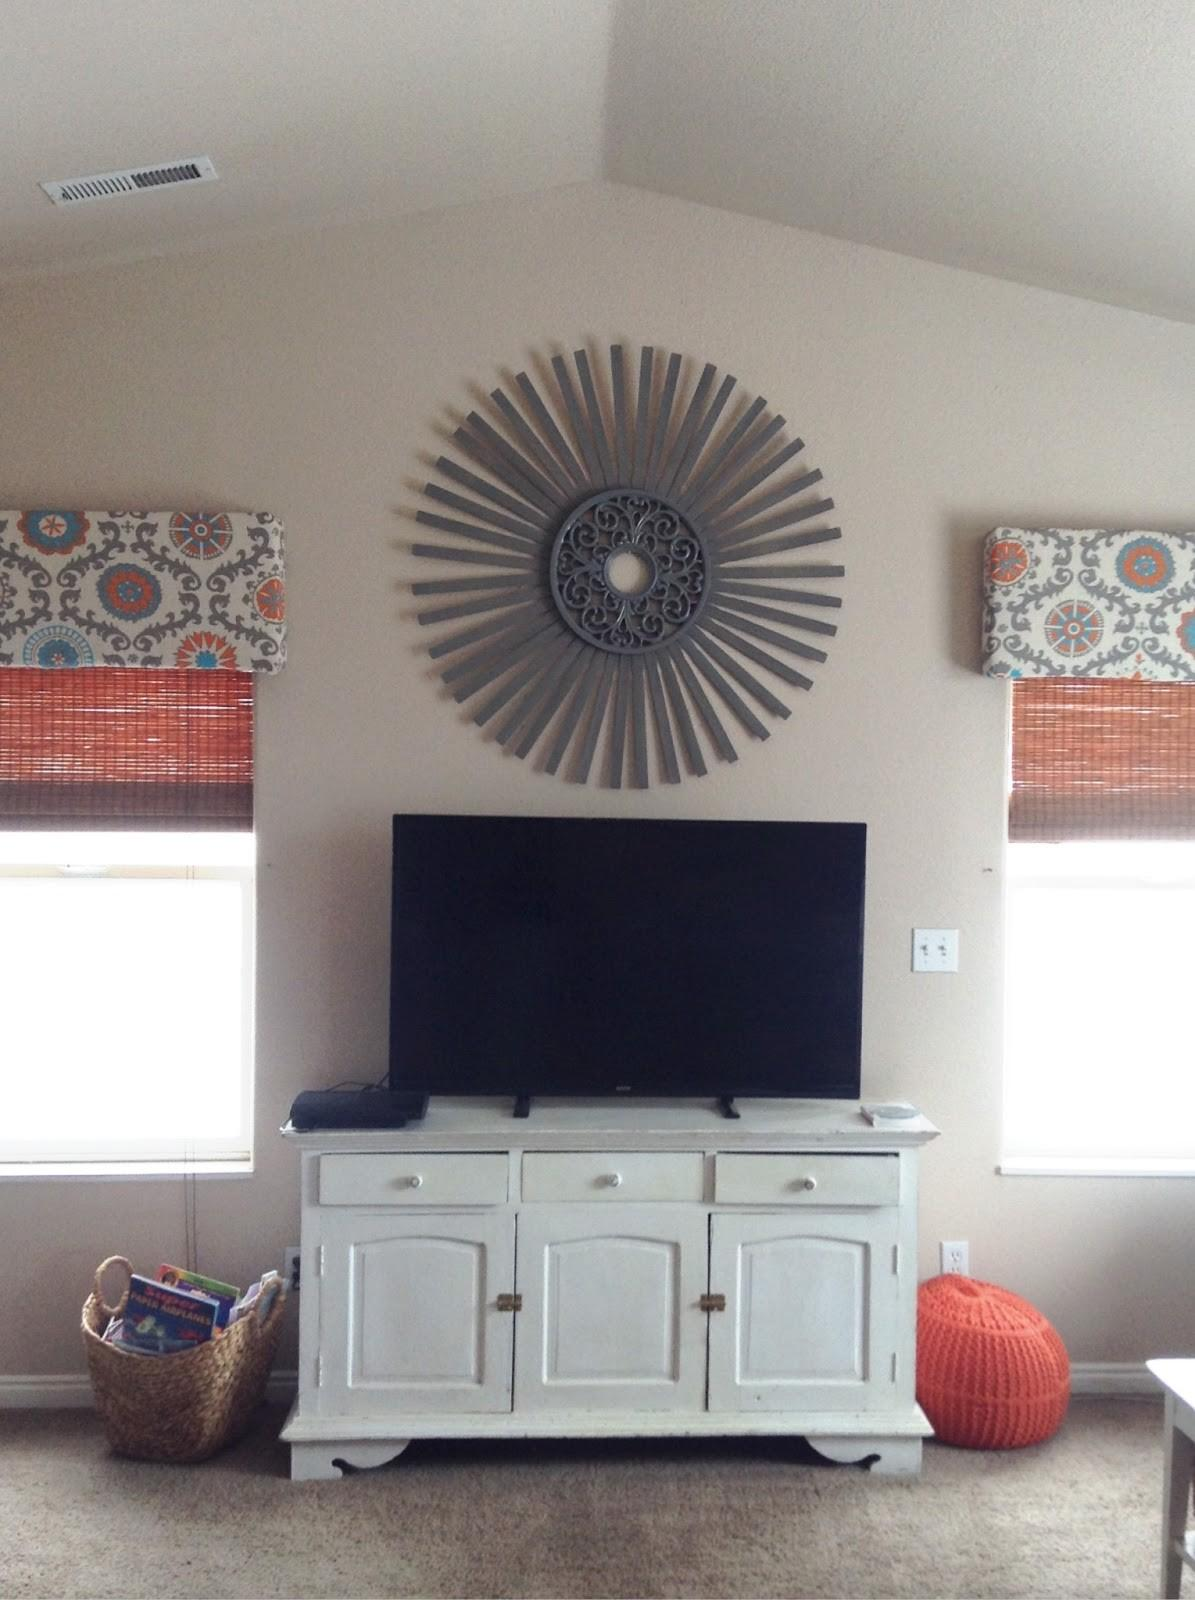 Sunburst Diy Roman Shade Tutorial Easy Cornice